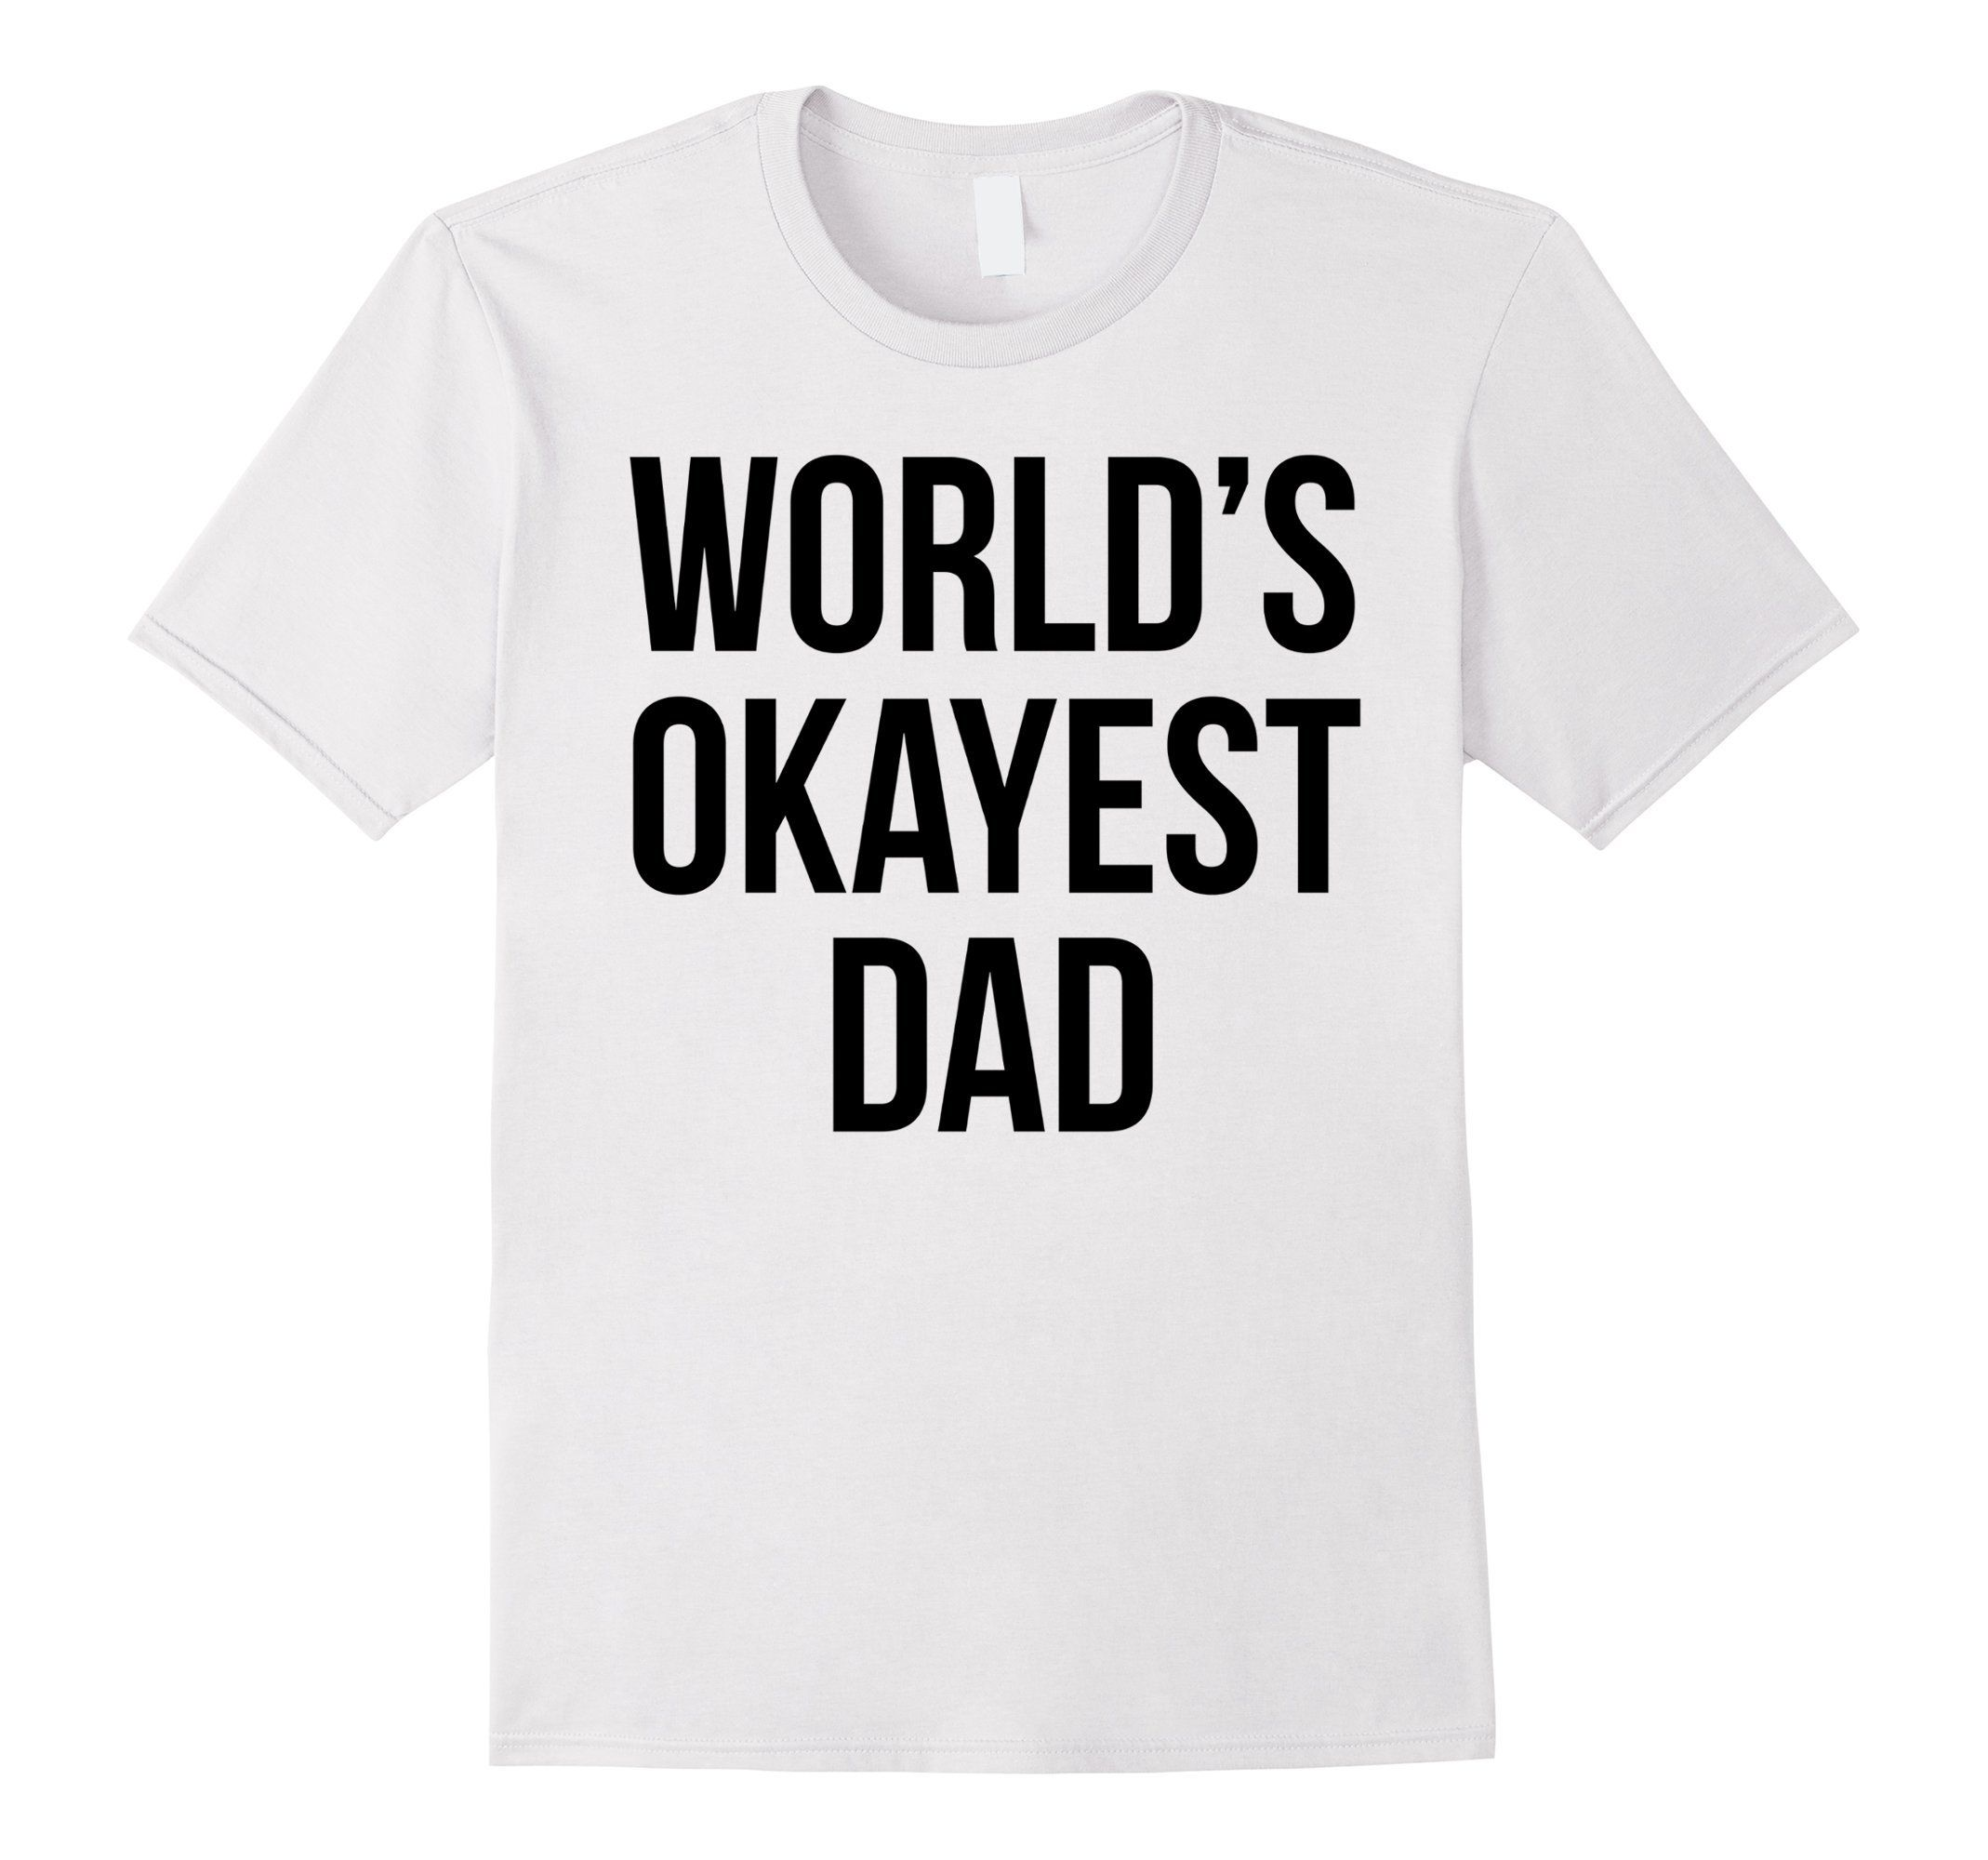 Funny T-shirt - World's Okayest Dad - Male Small - White